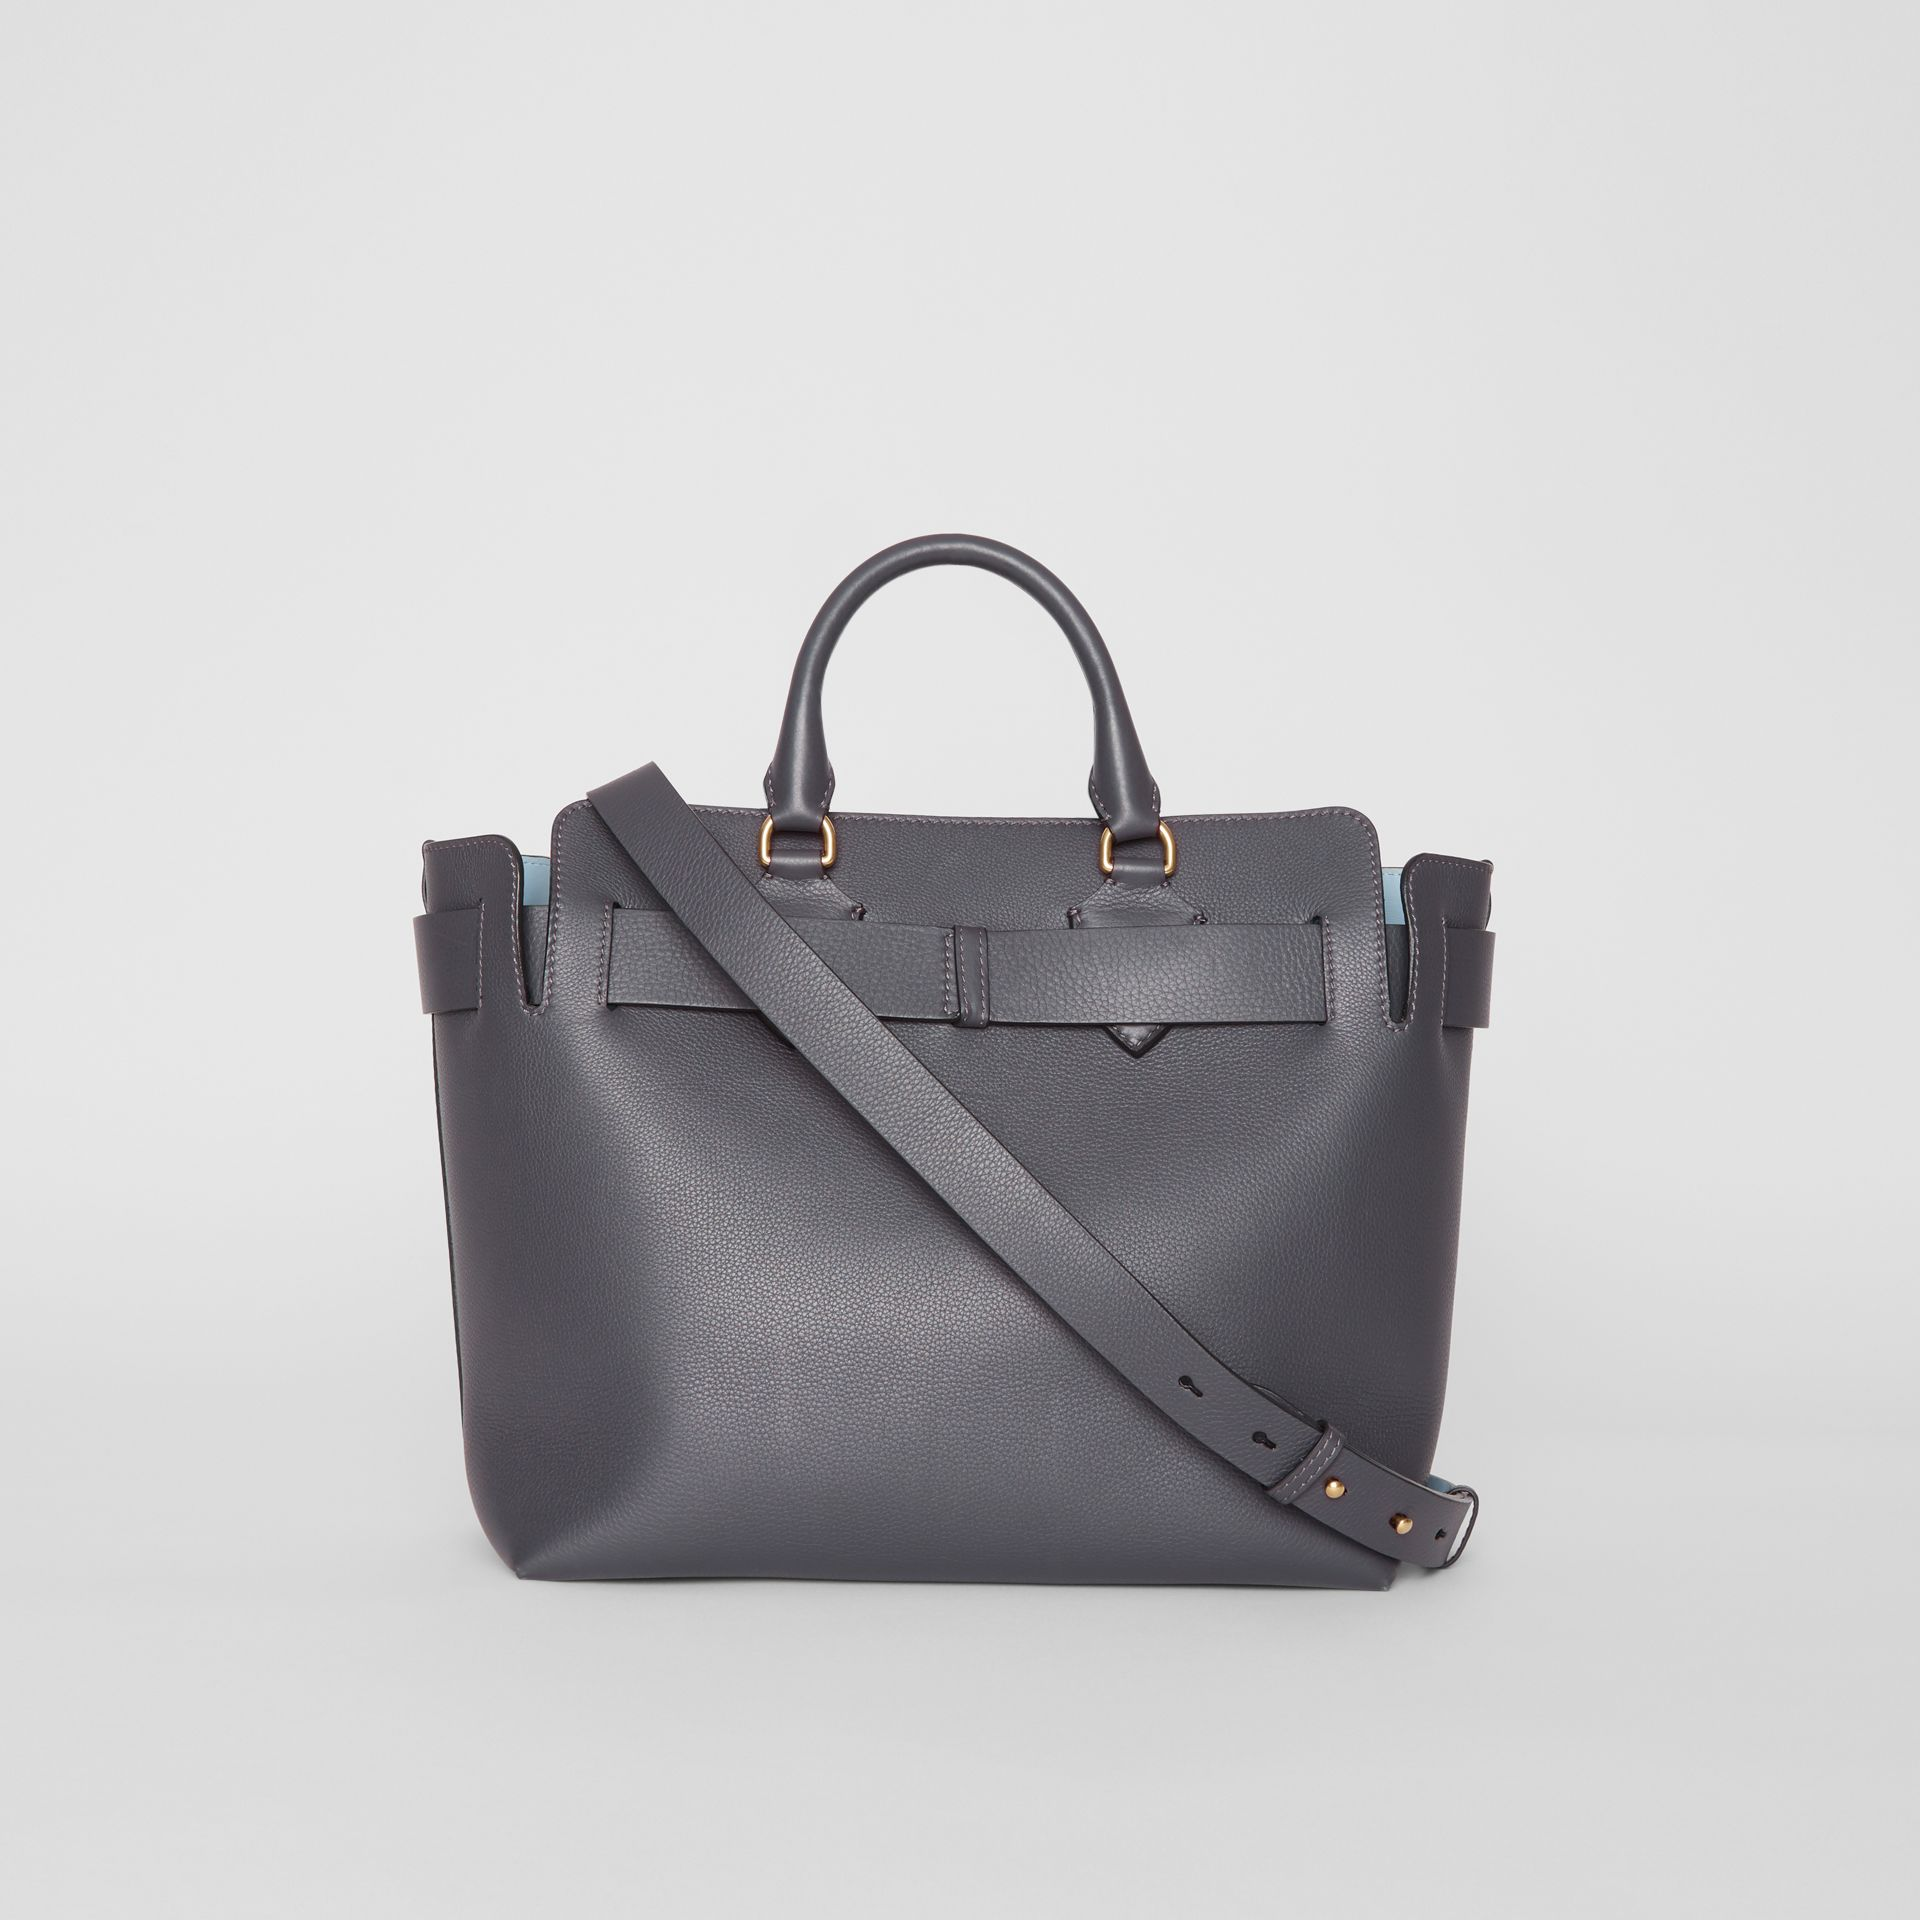 Sac The Belt moyen en cuir (Gris Anthracite) - Femme | Burberry - photo de la galerie 7